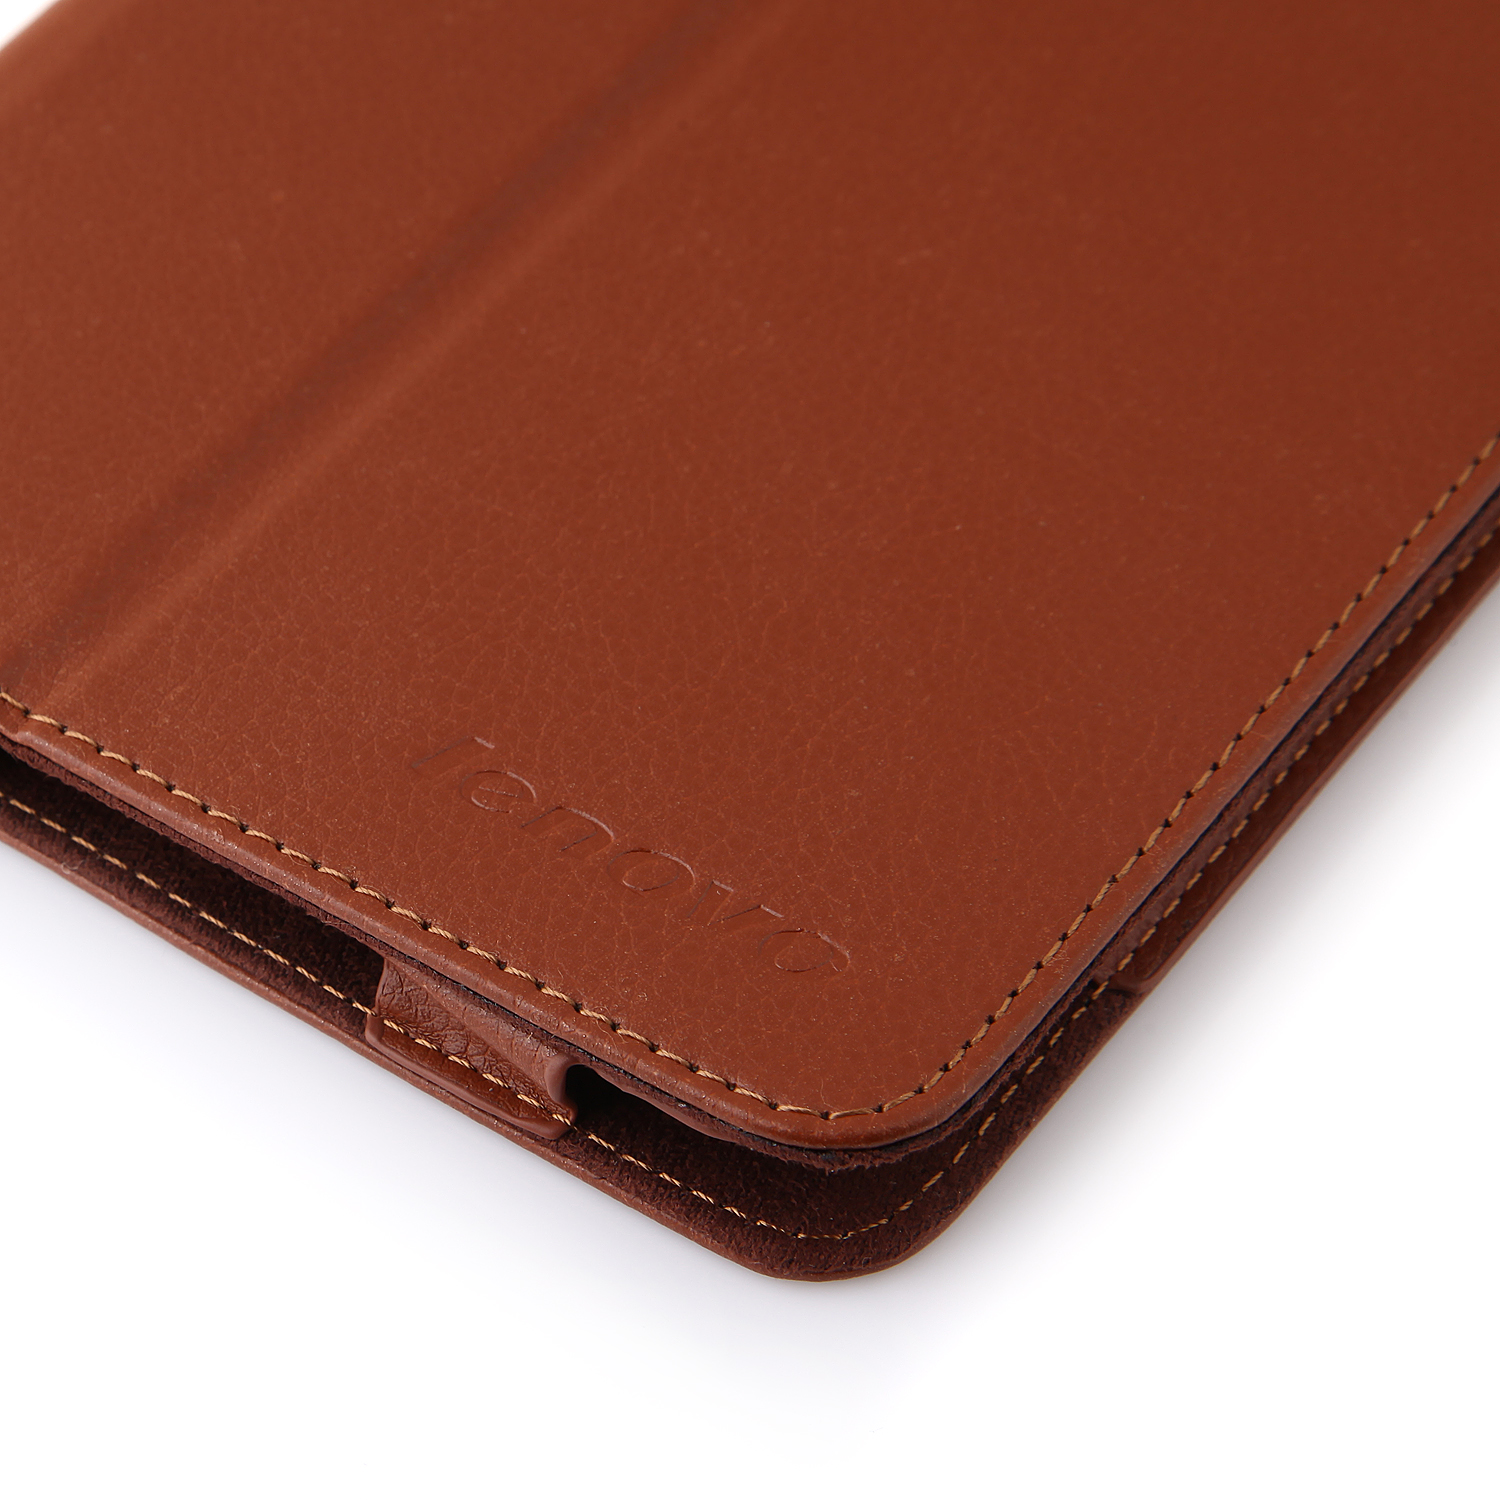 Protective PU Leather Stand Case Cover for Lenovo A5500 Tablet PC Brown